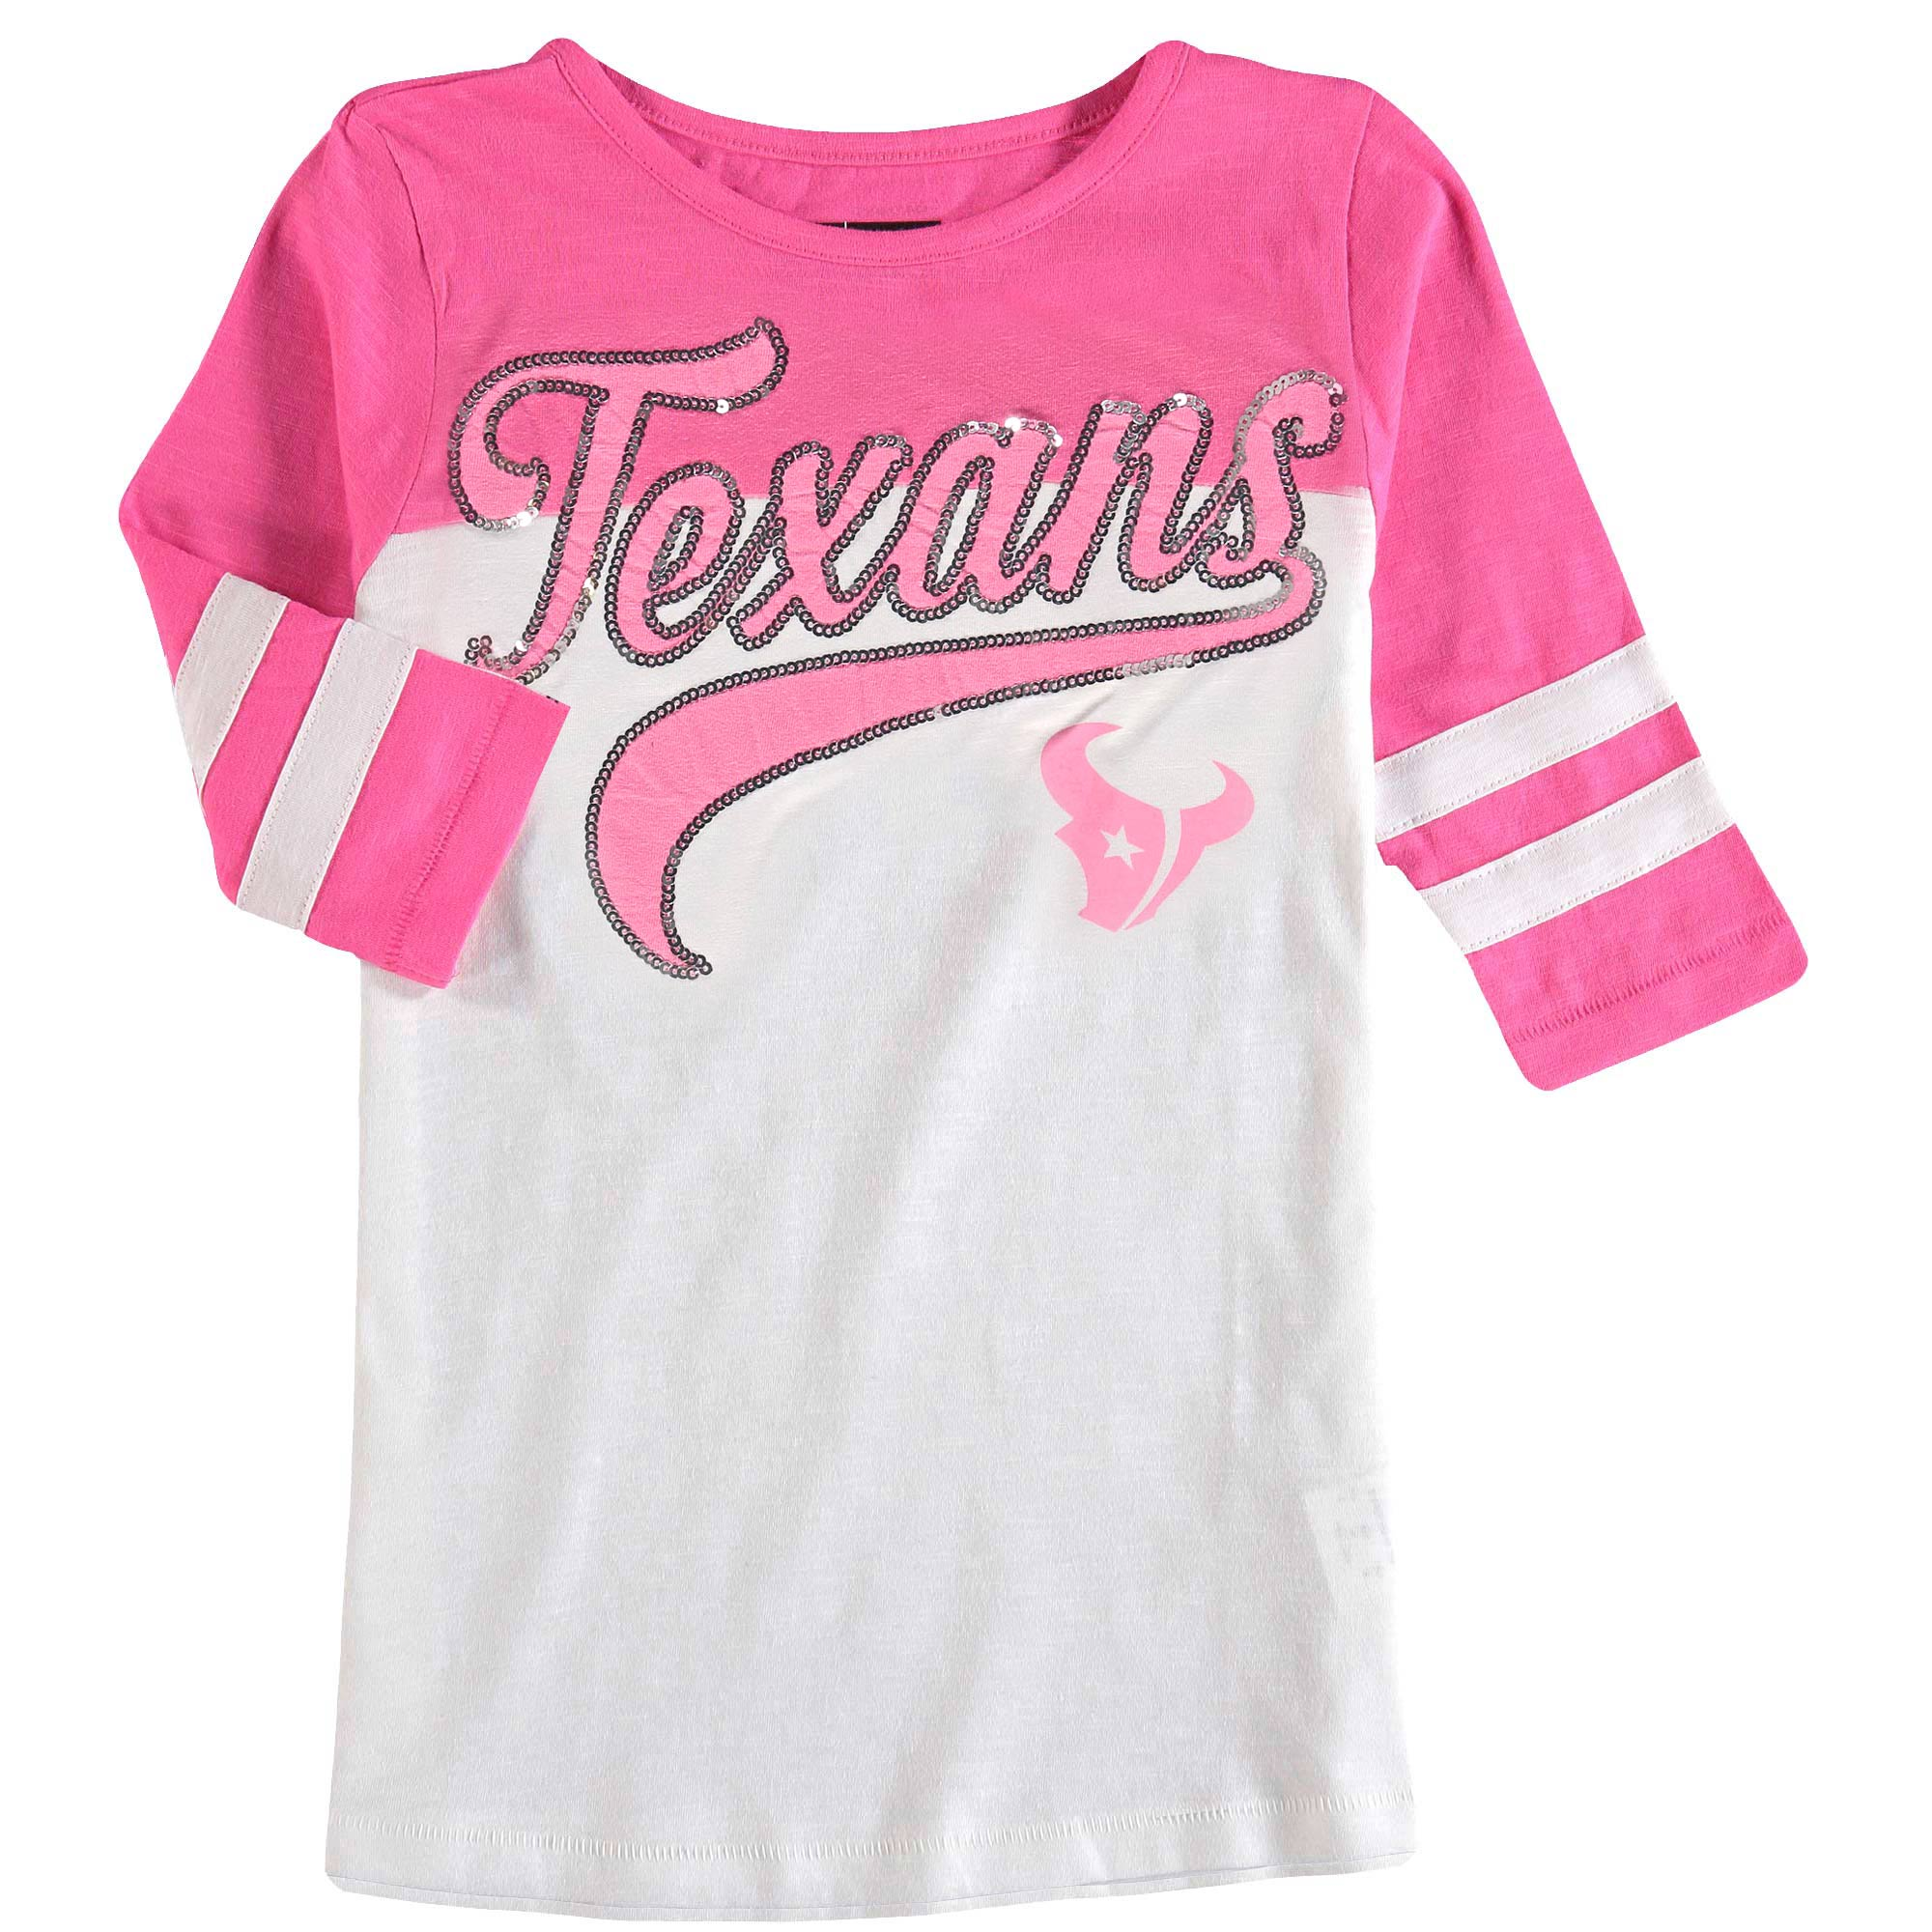 Houston Texans 5th & Ocean by New Era Girls Youth Jersey Slub 3/4-Sleeve T-Shirt - White/Pink